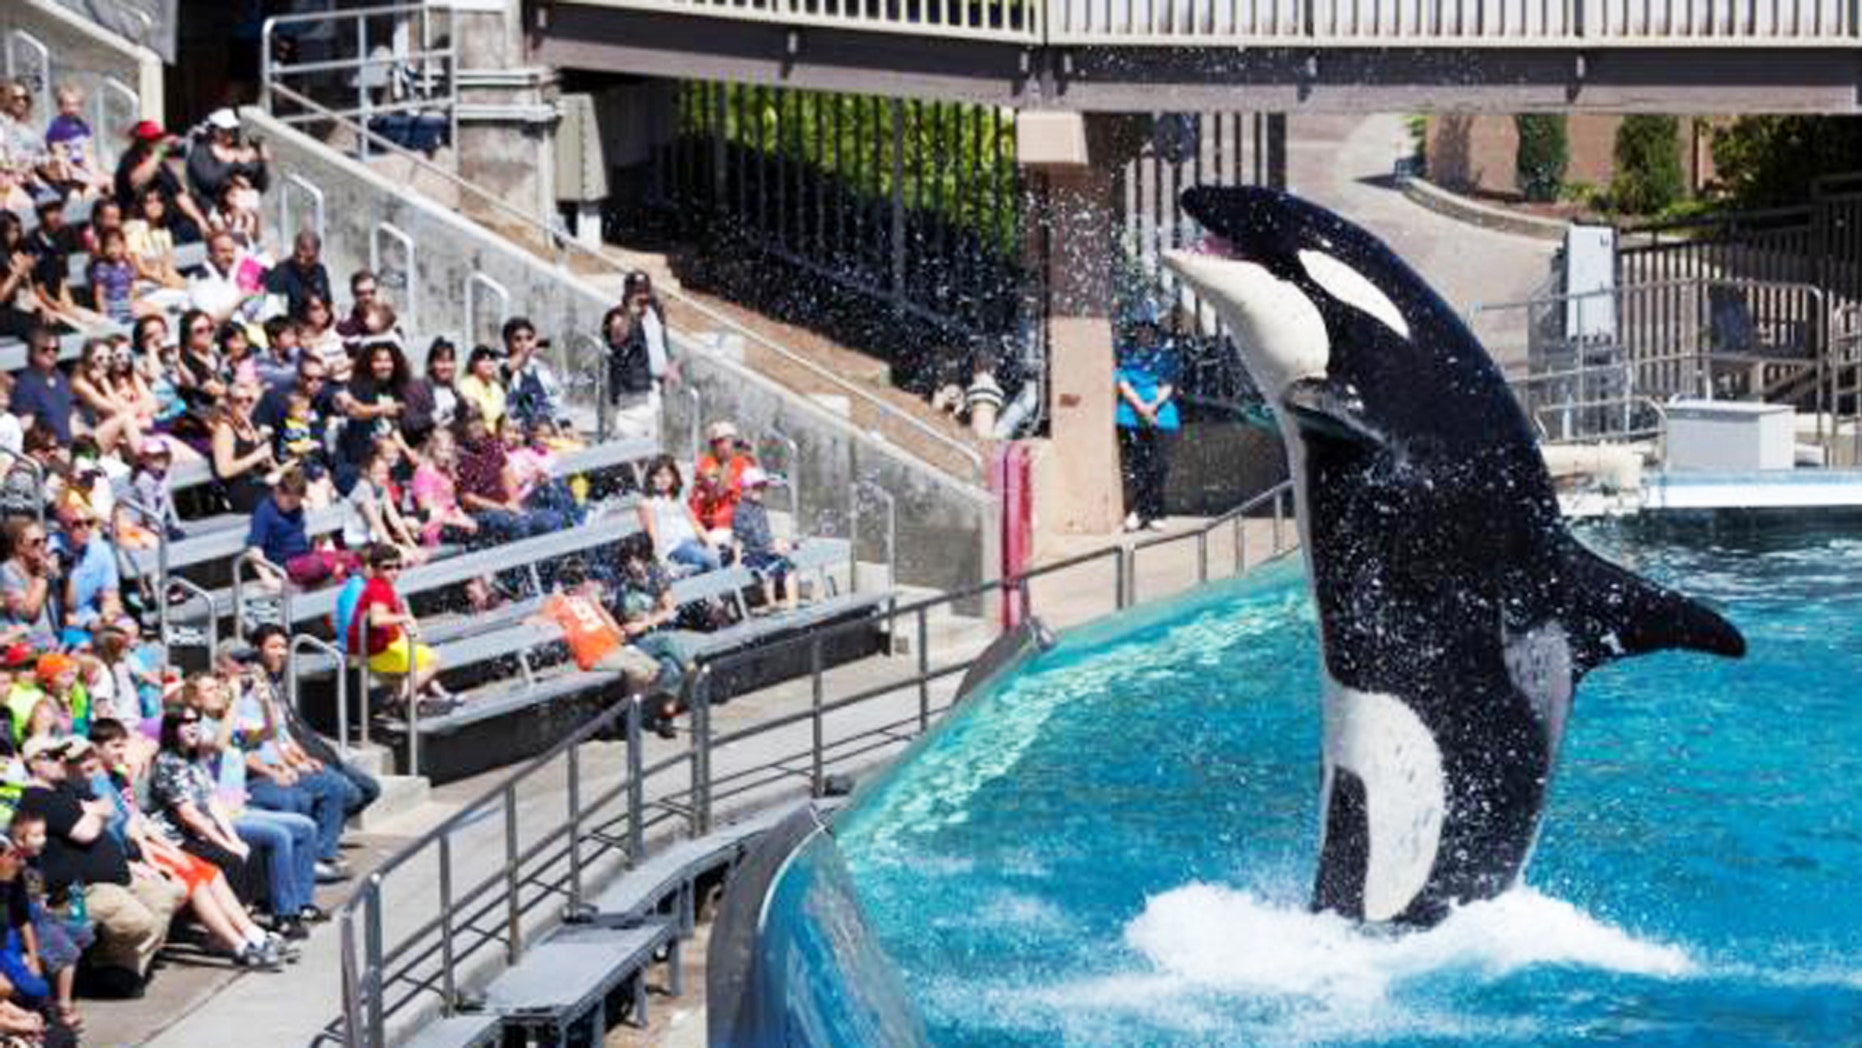 The traditional Shamu show at SeaWorld San Diego will be phased out in 2016.